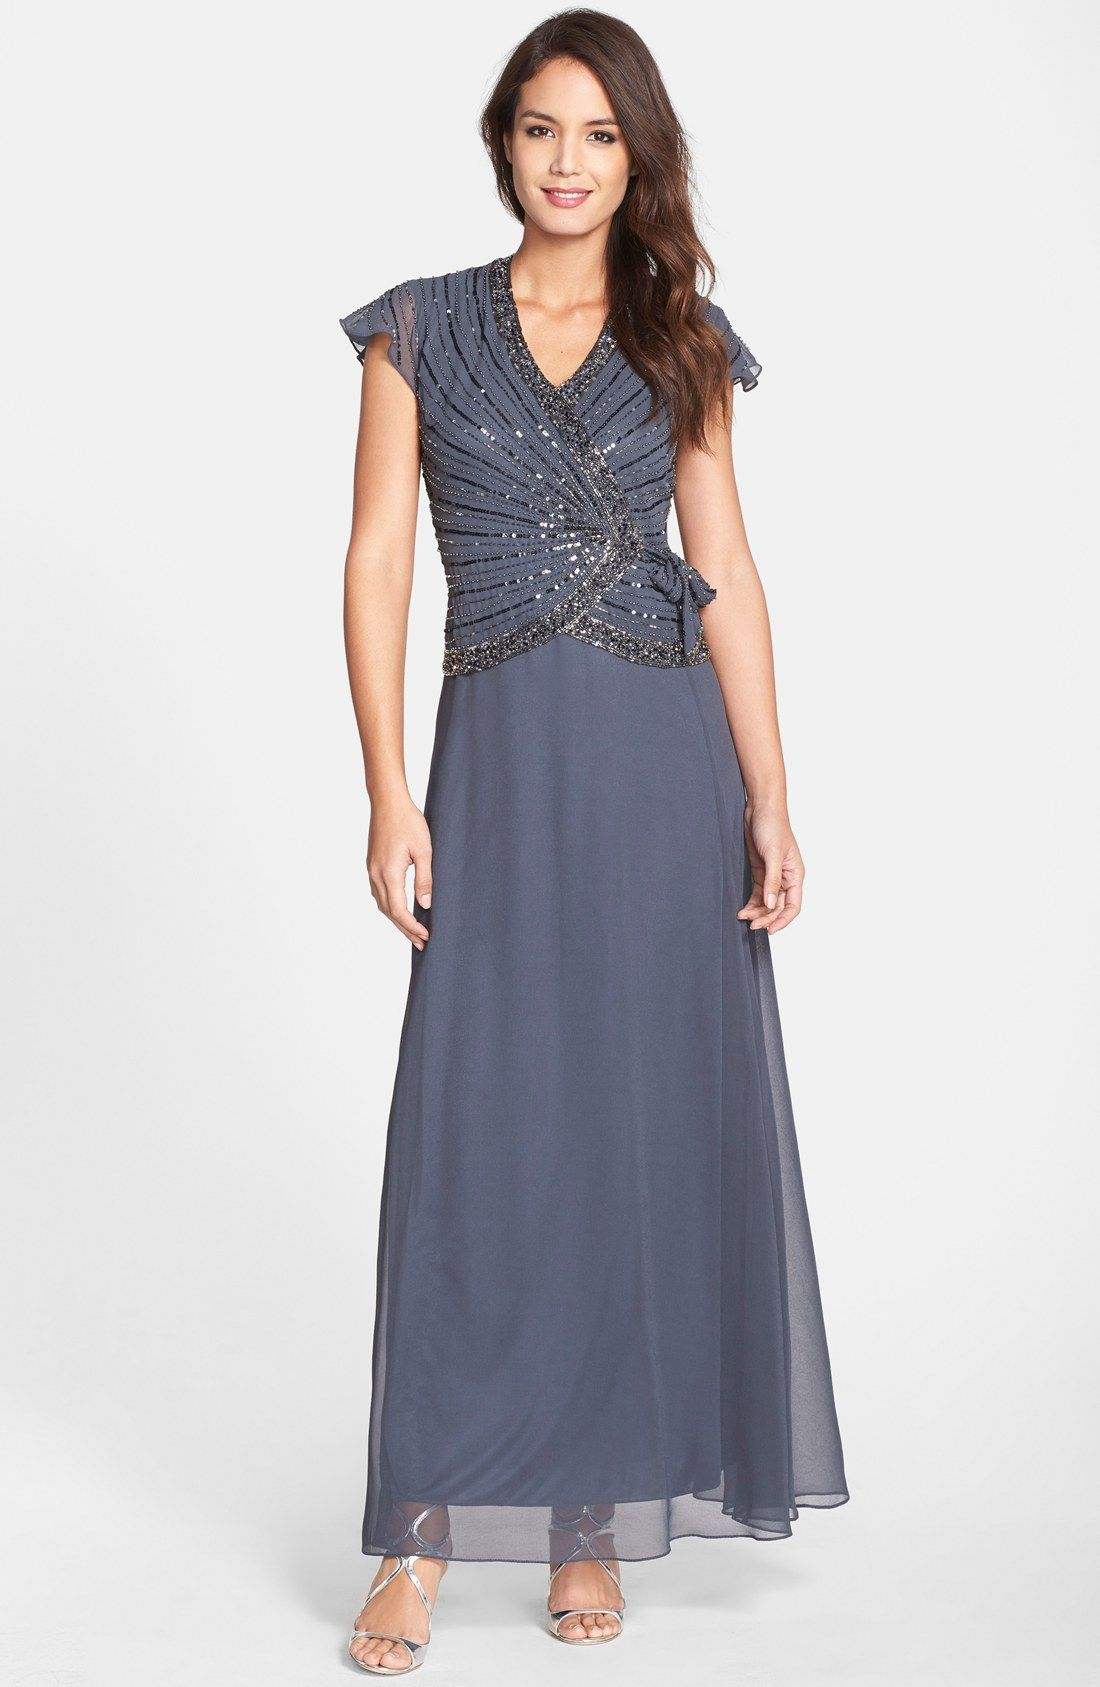 $228 J Kara Embellished Mock Two-Piece Gown | Glamour | Pinterest ...